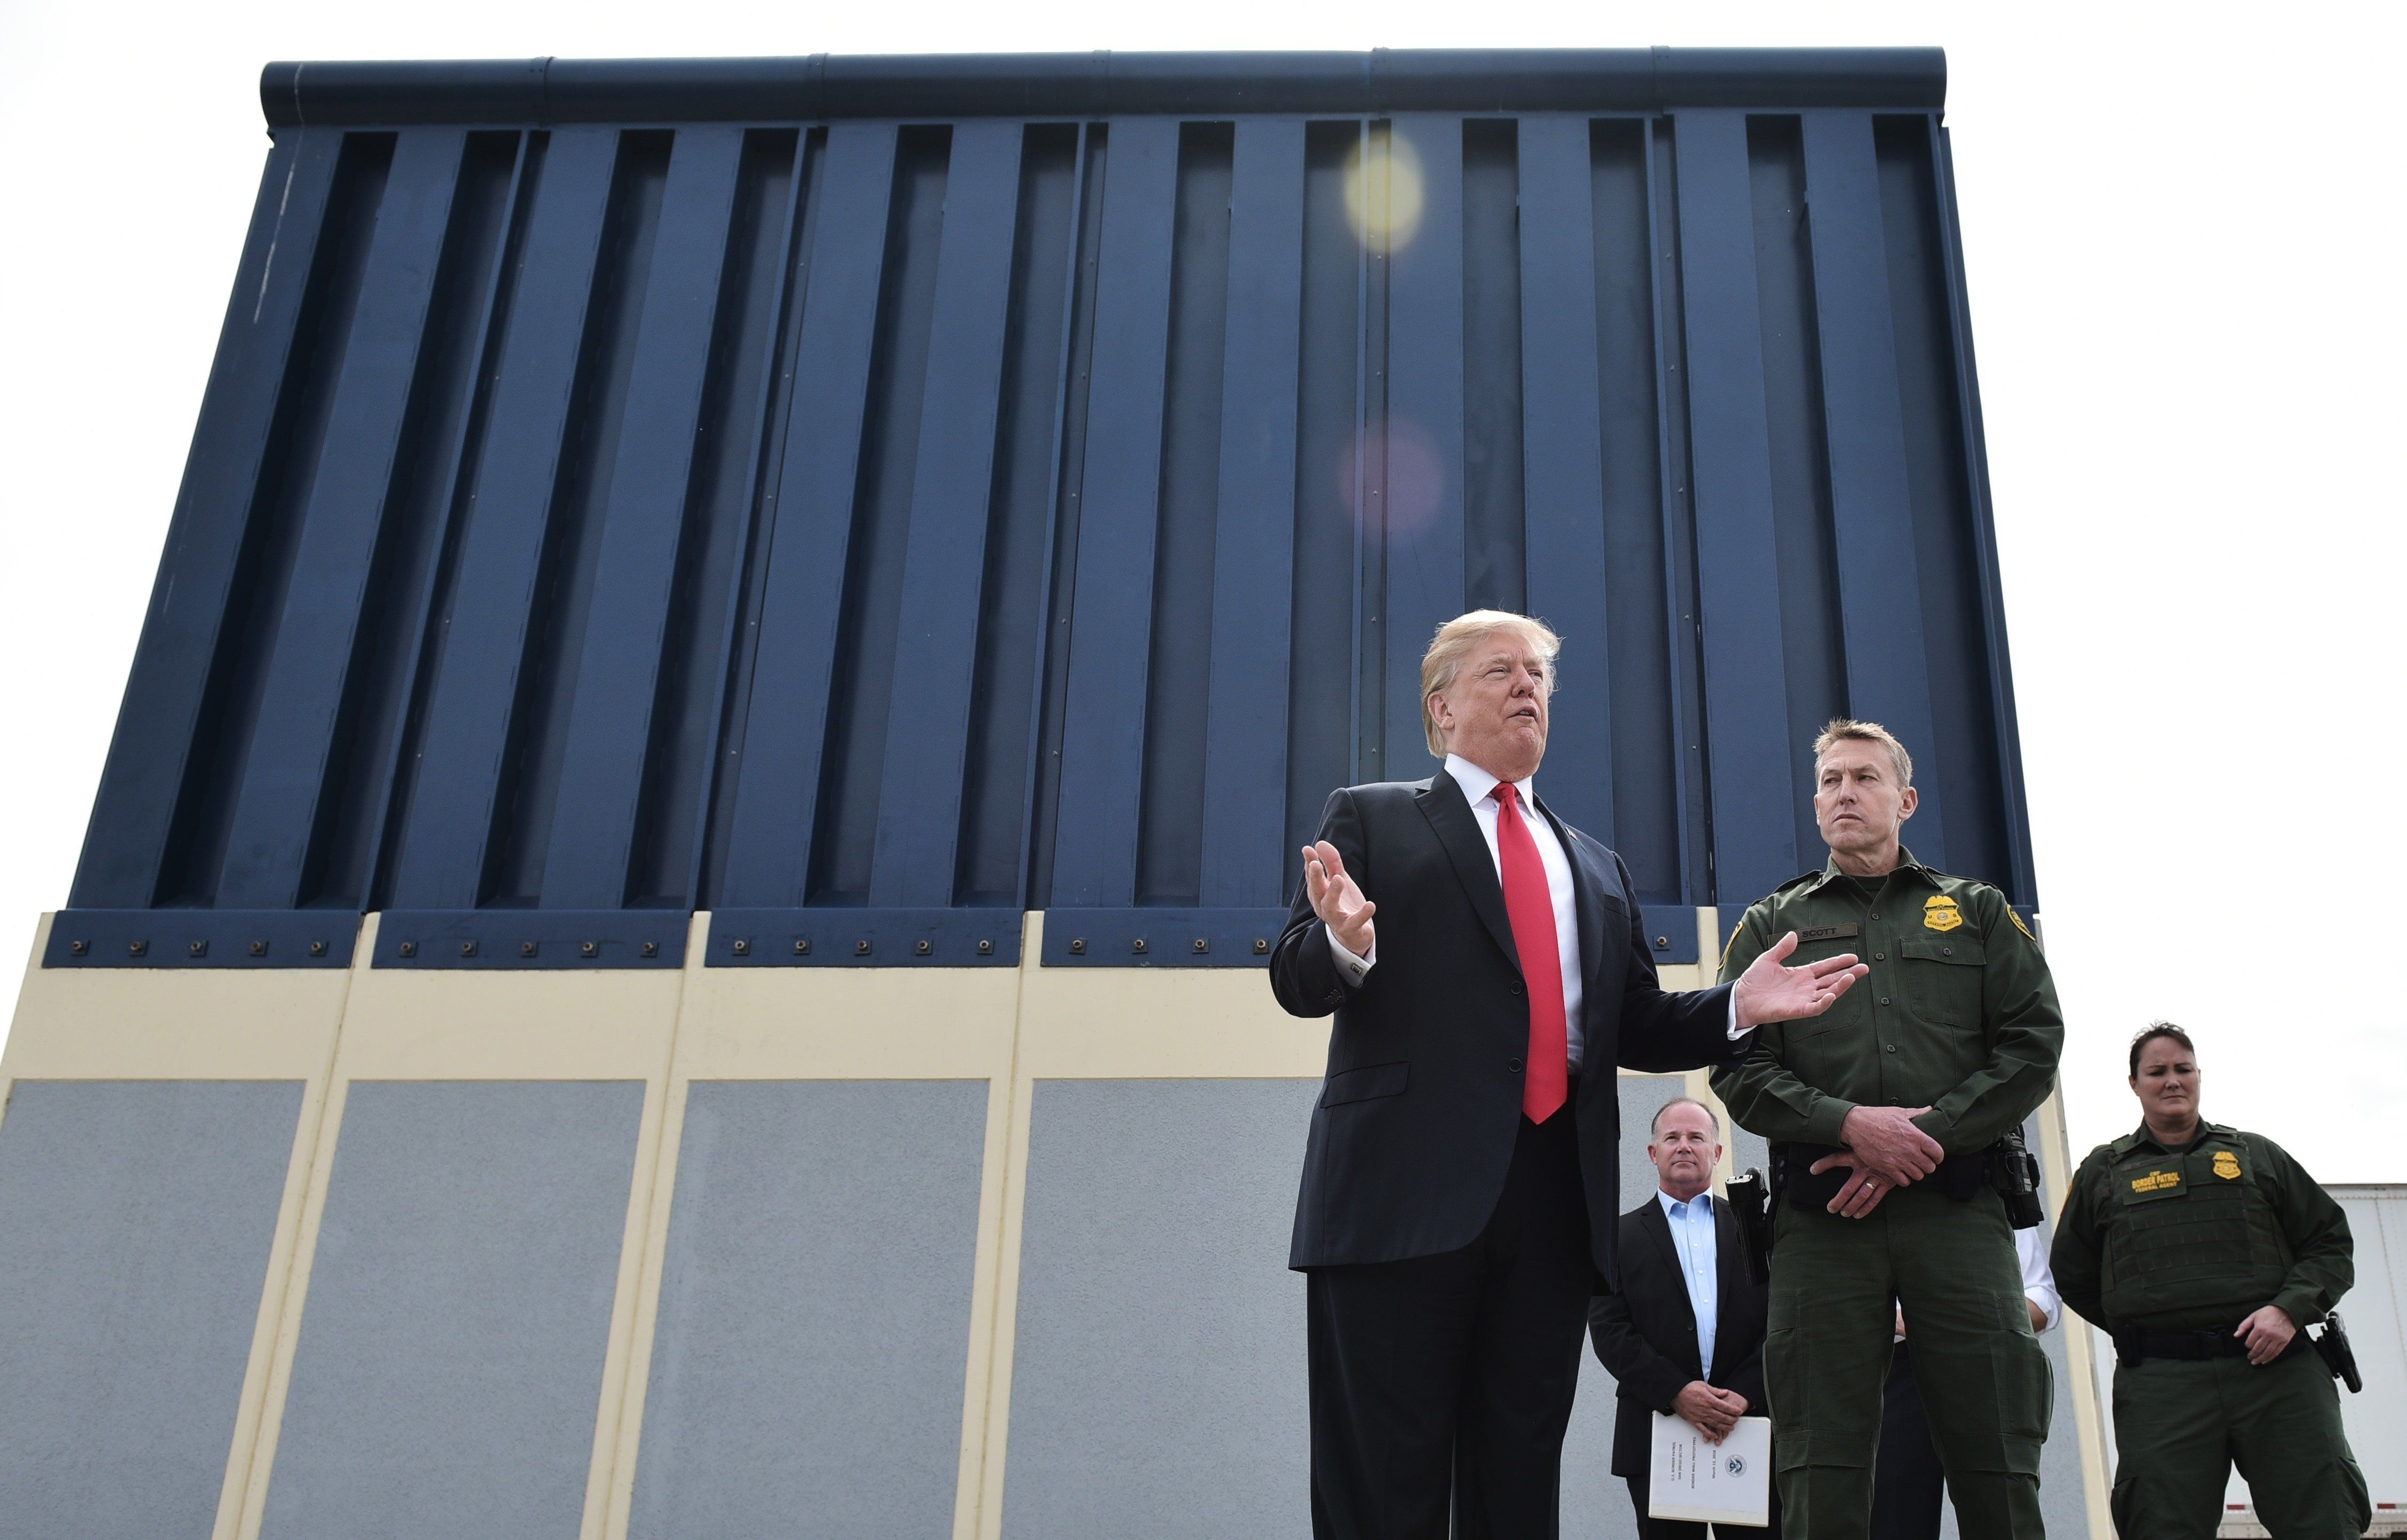 US President Donald Trump speaks during an inspection of border wall prototypes in San Diego, California on March 13, 2018. Donald Trump -- making his first trip to California as president -- warned there would be 'bedlam' without the controversial wall he wants to build on the border with Mexico, as he inspected several prototype barriers. The trip to the 'Golden State' -- the most populous in the country and a Democratic stronghold -- was largely upstaged by his own announcement that he had sacked Secretary of State Rex Tillerson.  / AFP PHOTO / MANDEL NGAN        (Photo credit should read MANDEL NGAN/AFP/Getty Images)